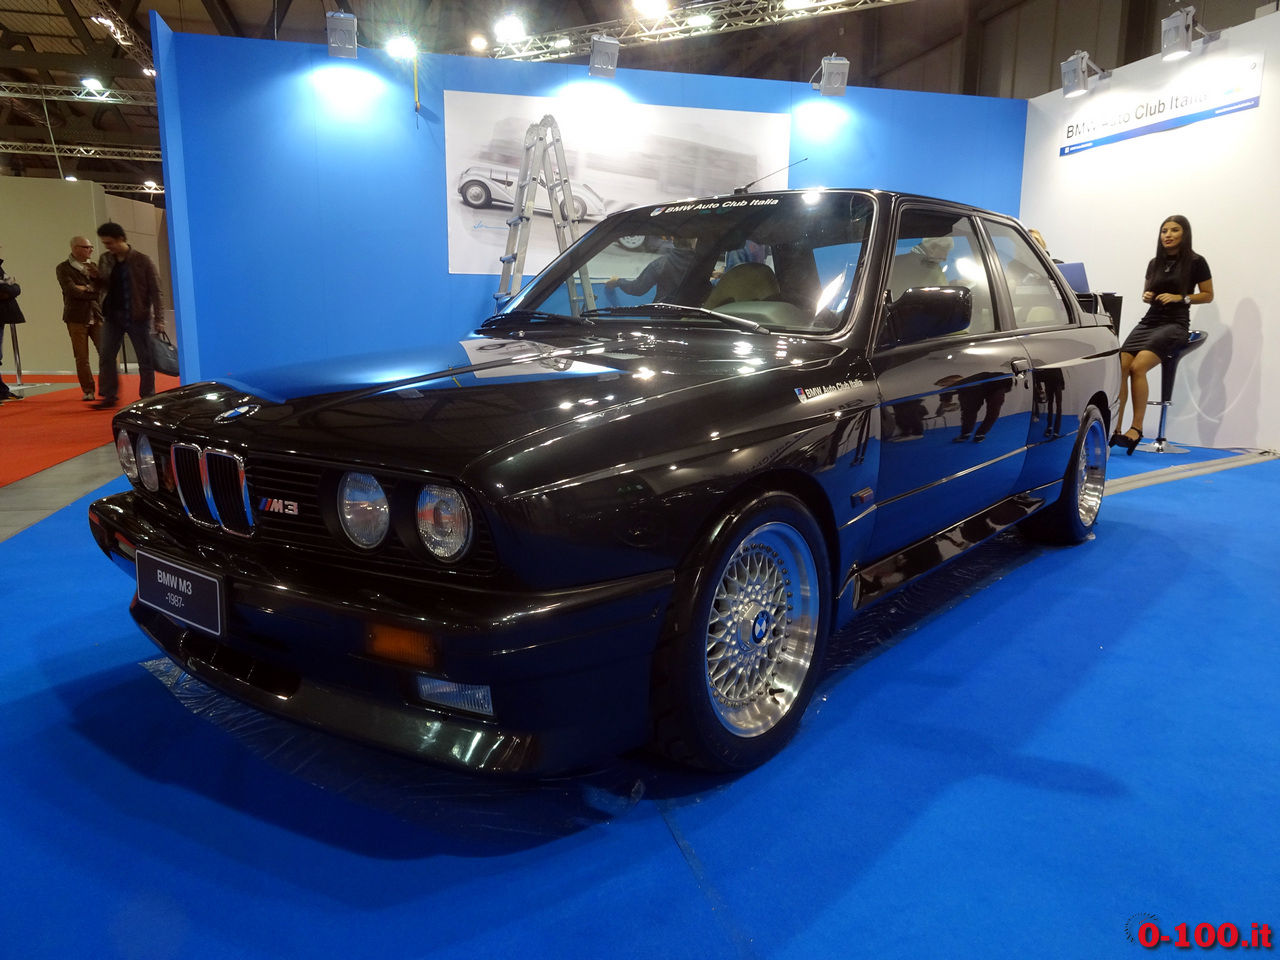 duemila-ruote-milano-autoclassica-rm-sothebys-0-100-bmw-m3_39